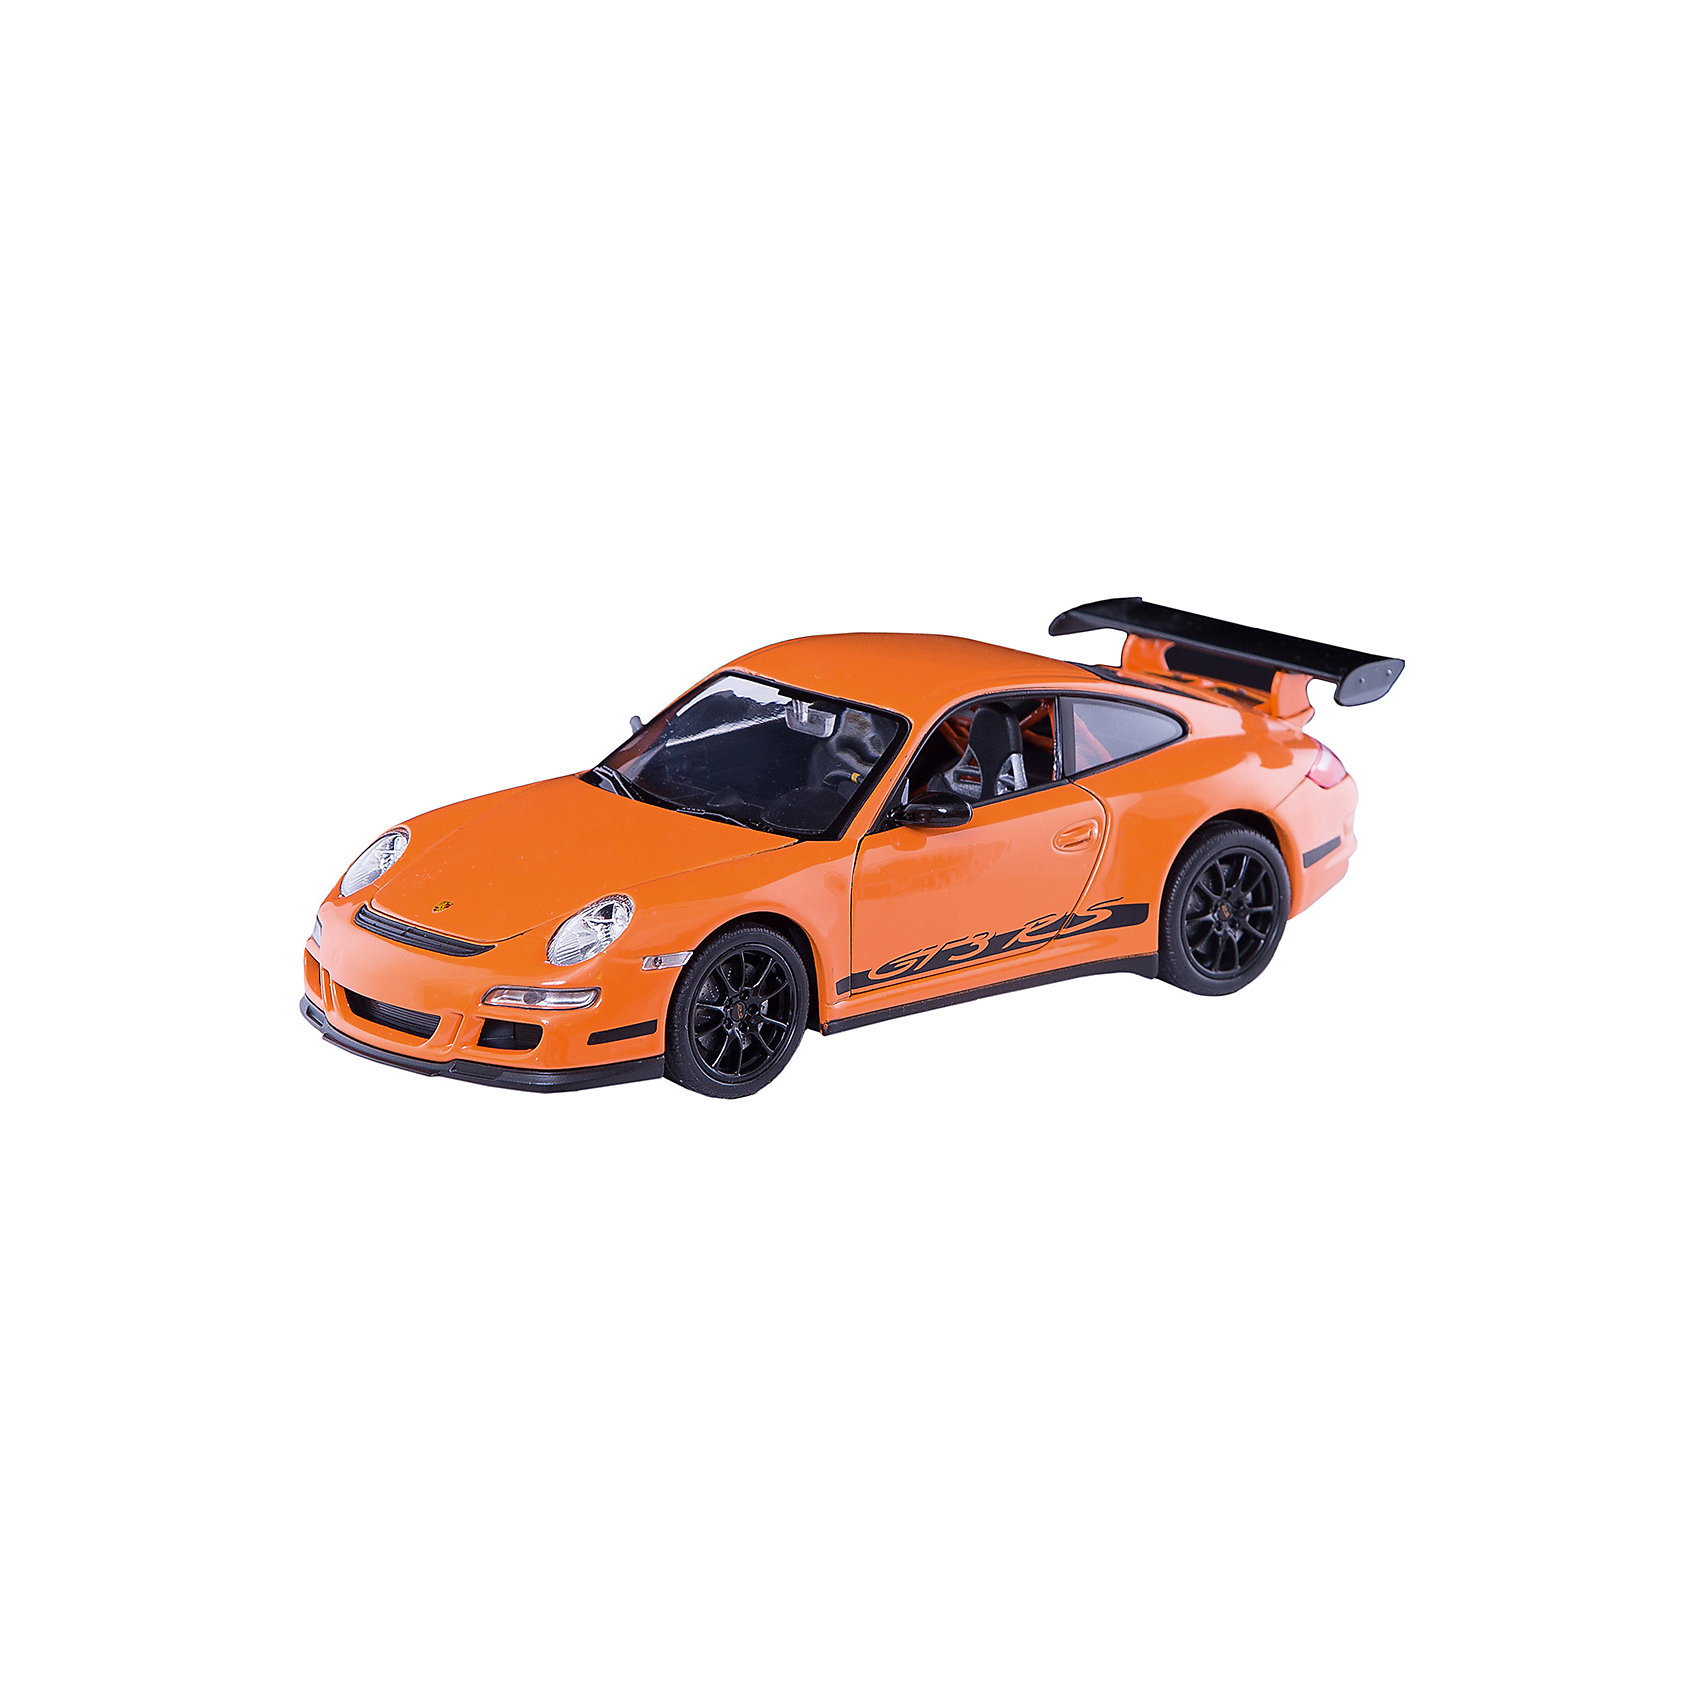 Welly Модель машины 1:24 PORSCHE 911 (997) GT3 RS, Welly welly welly гараж 3 машины и вертолет